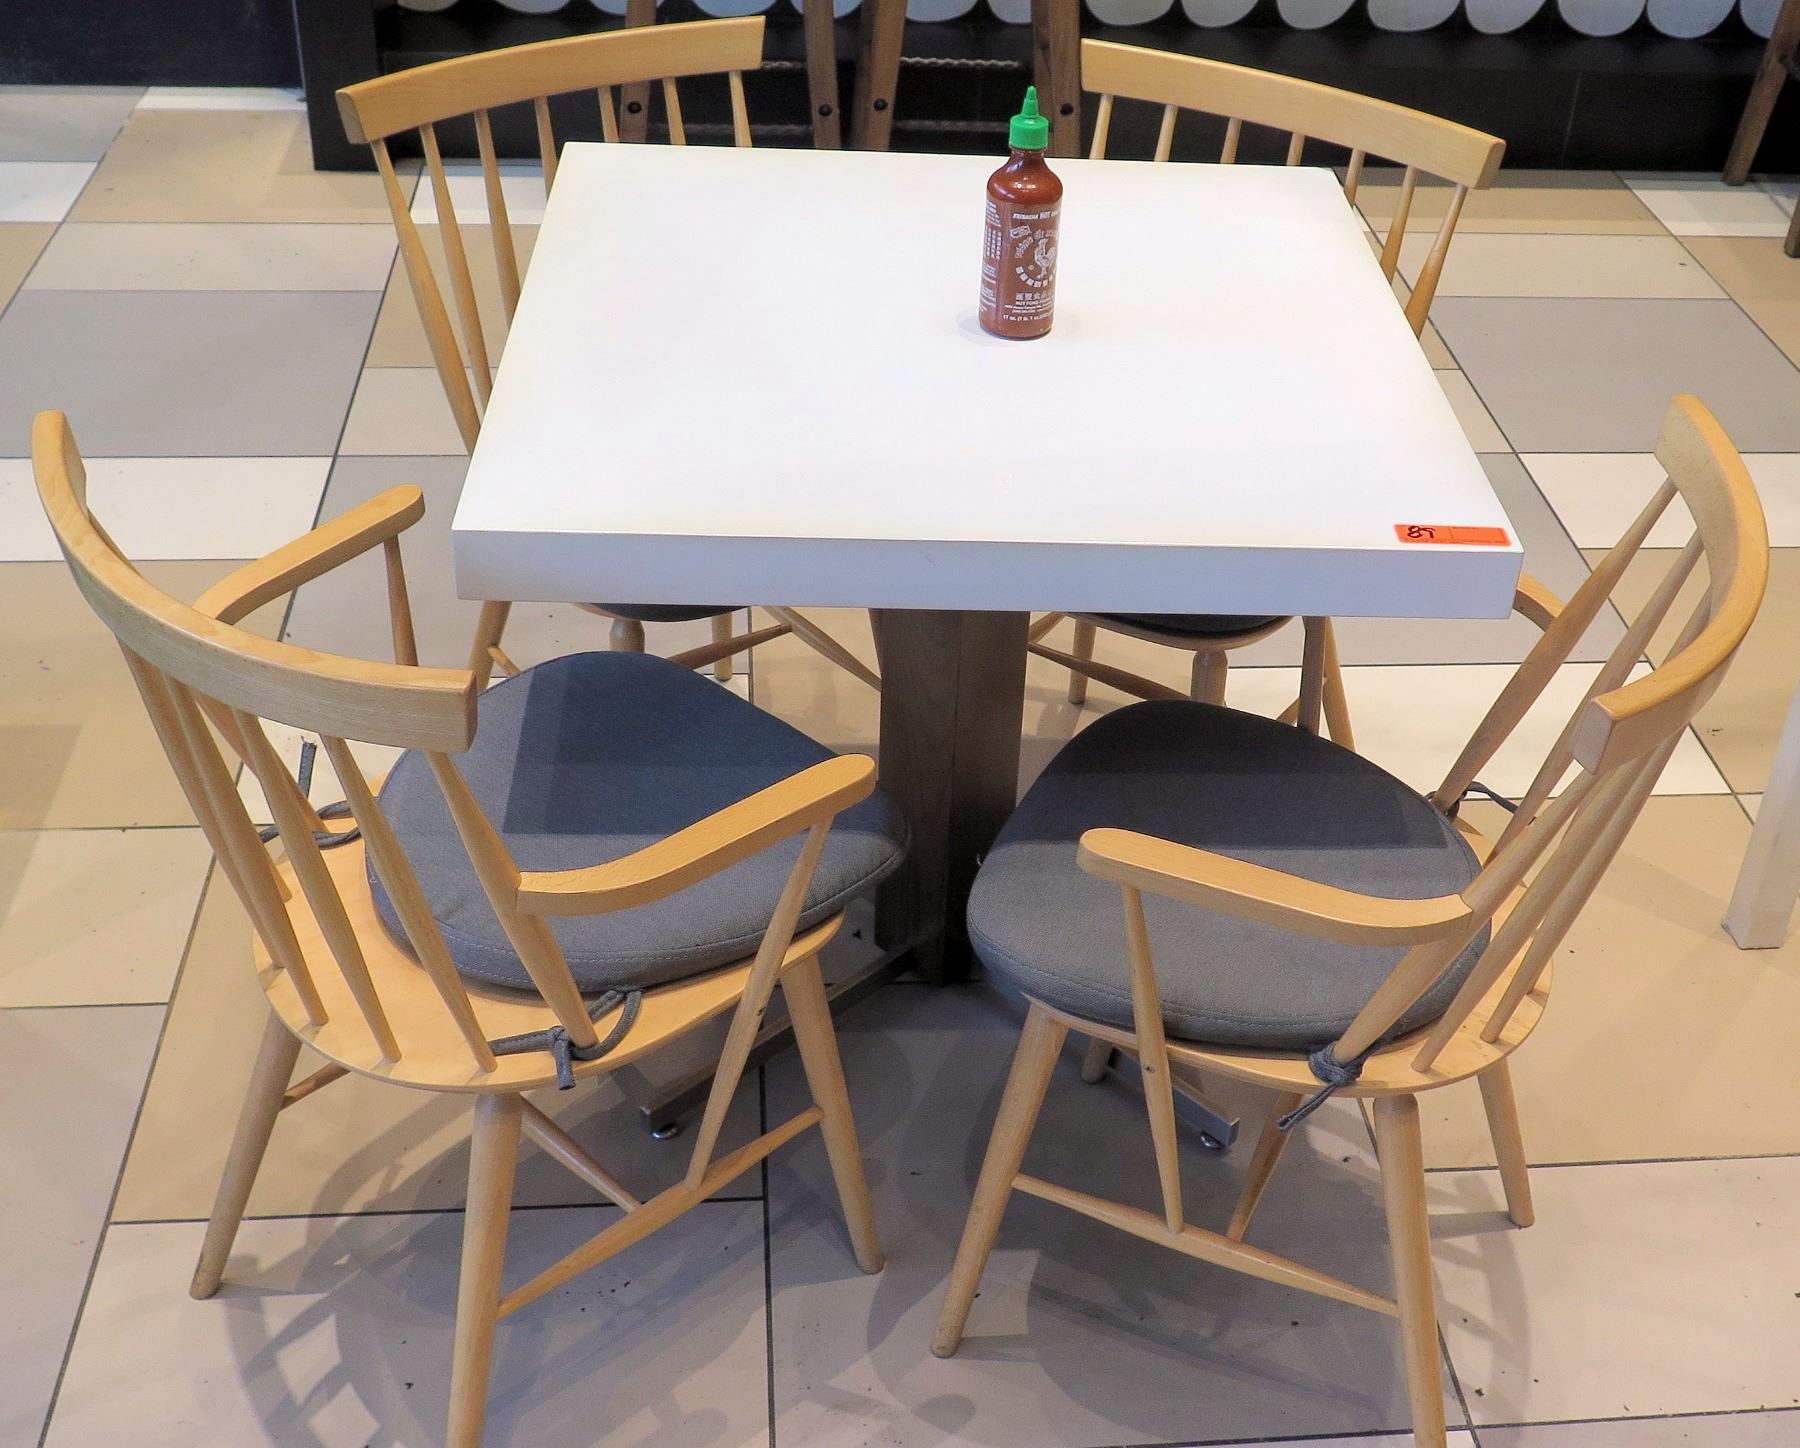 Strange White Table W Metal Base 31X31 4 Wooden Chairs W Seat Evergreenethics Interior Chair Design Evergreenethicsorg